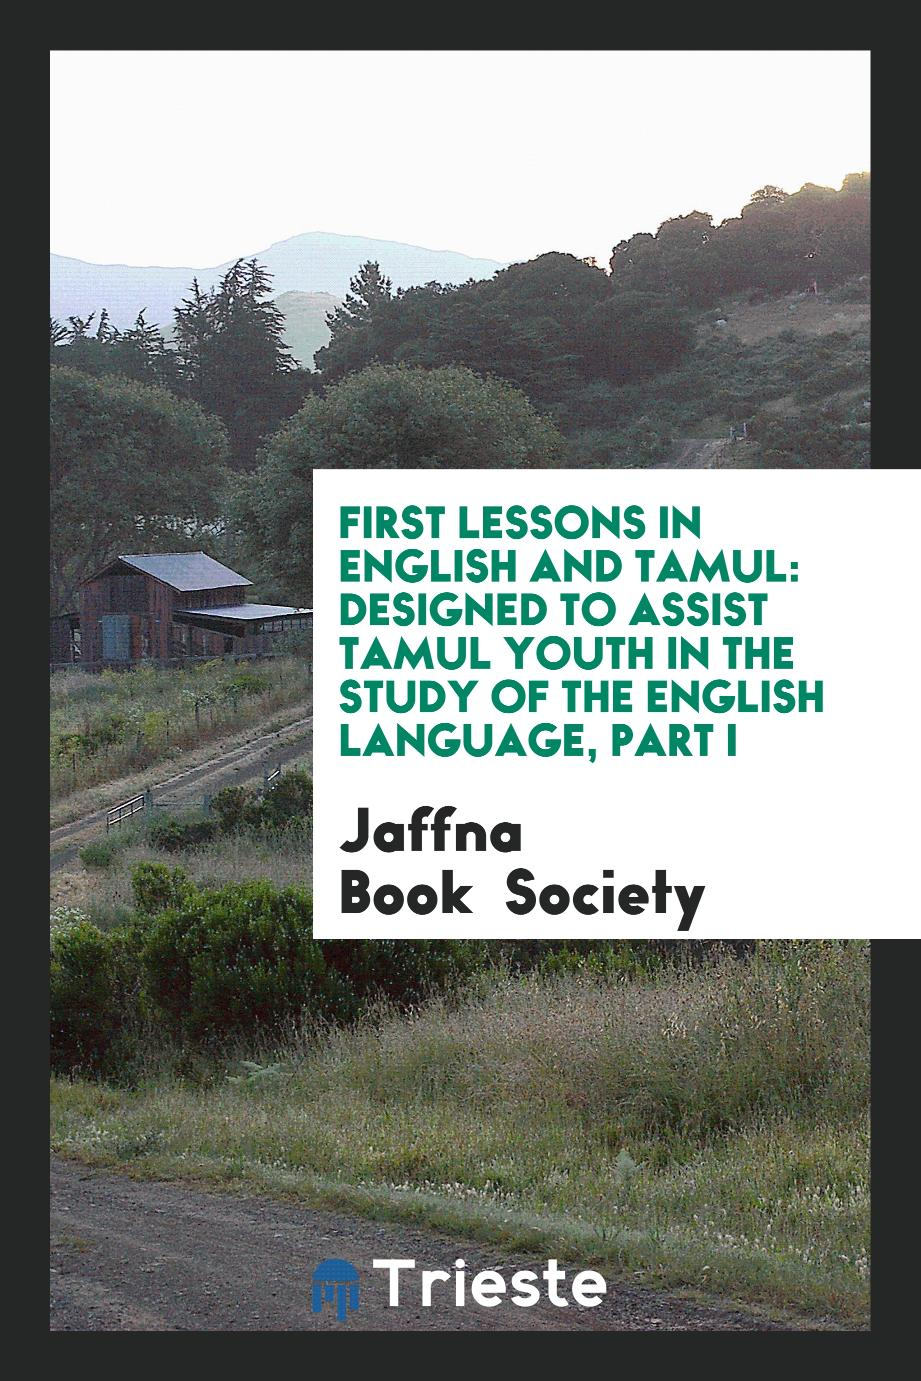 First Lessons in English and Tamul: Designed to Assist Tamul Youth in the study of the english language, part I